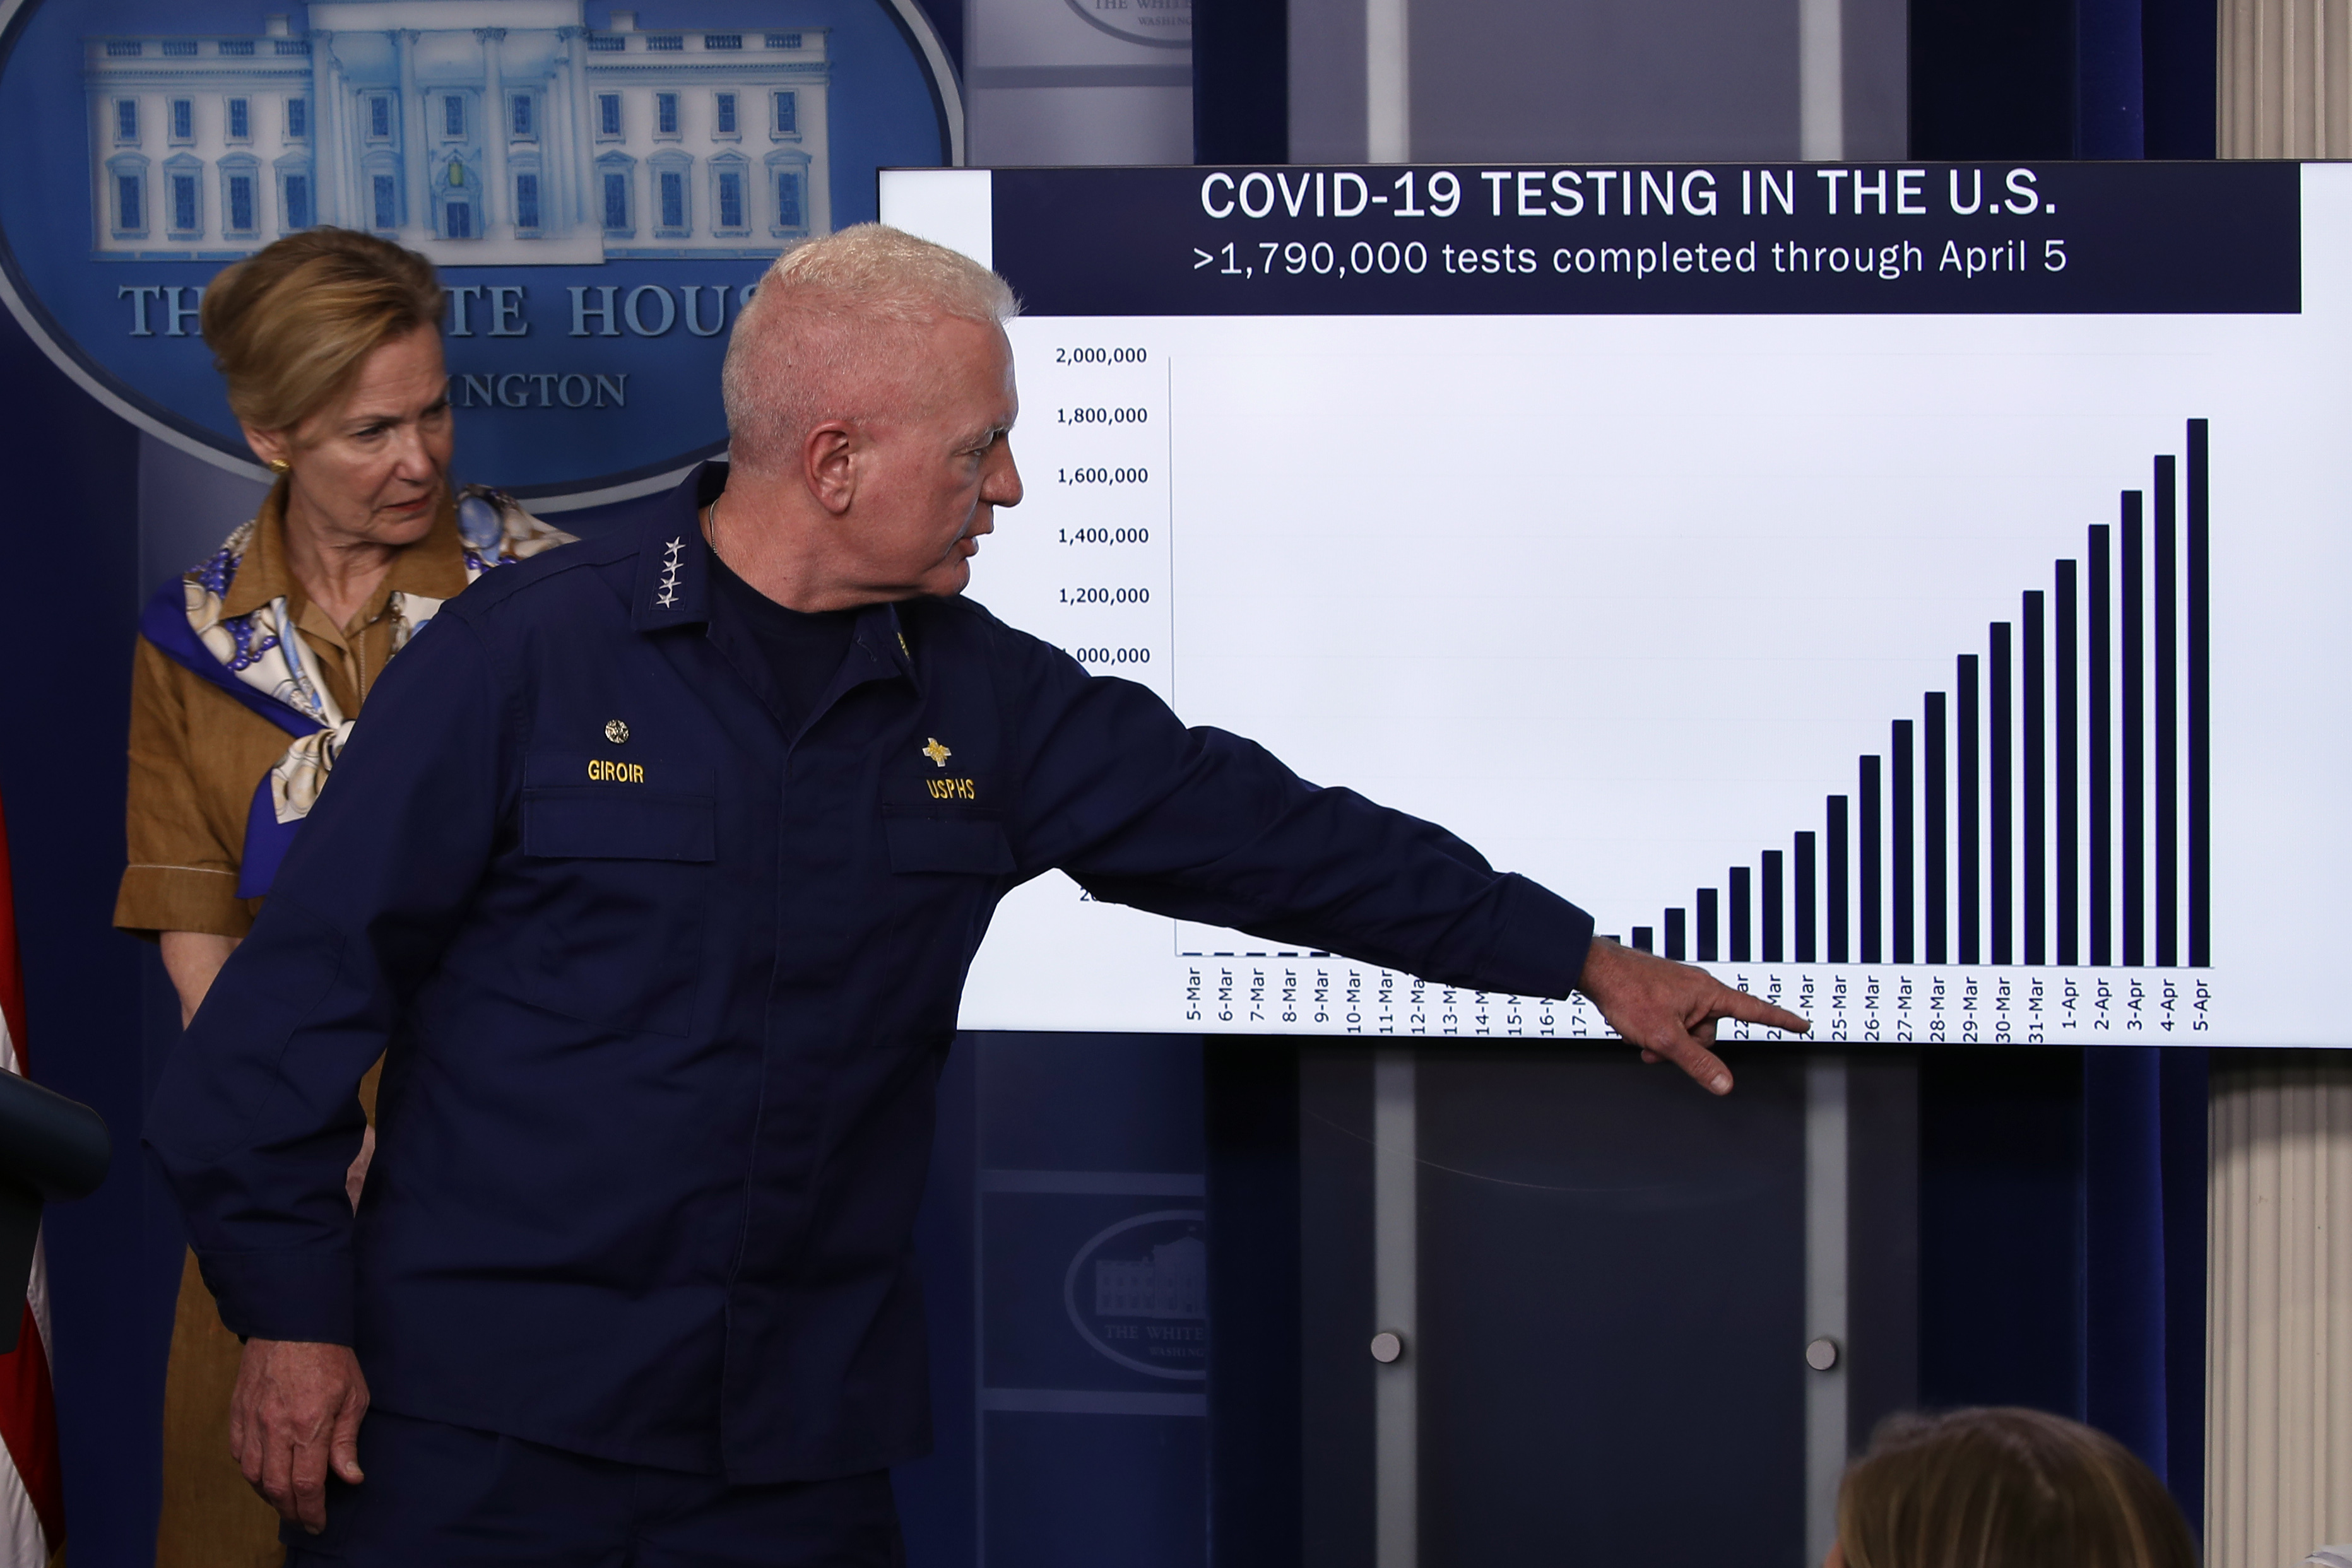 White House Coronavirus Task Force members reference a misleading chart in a press briefing